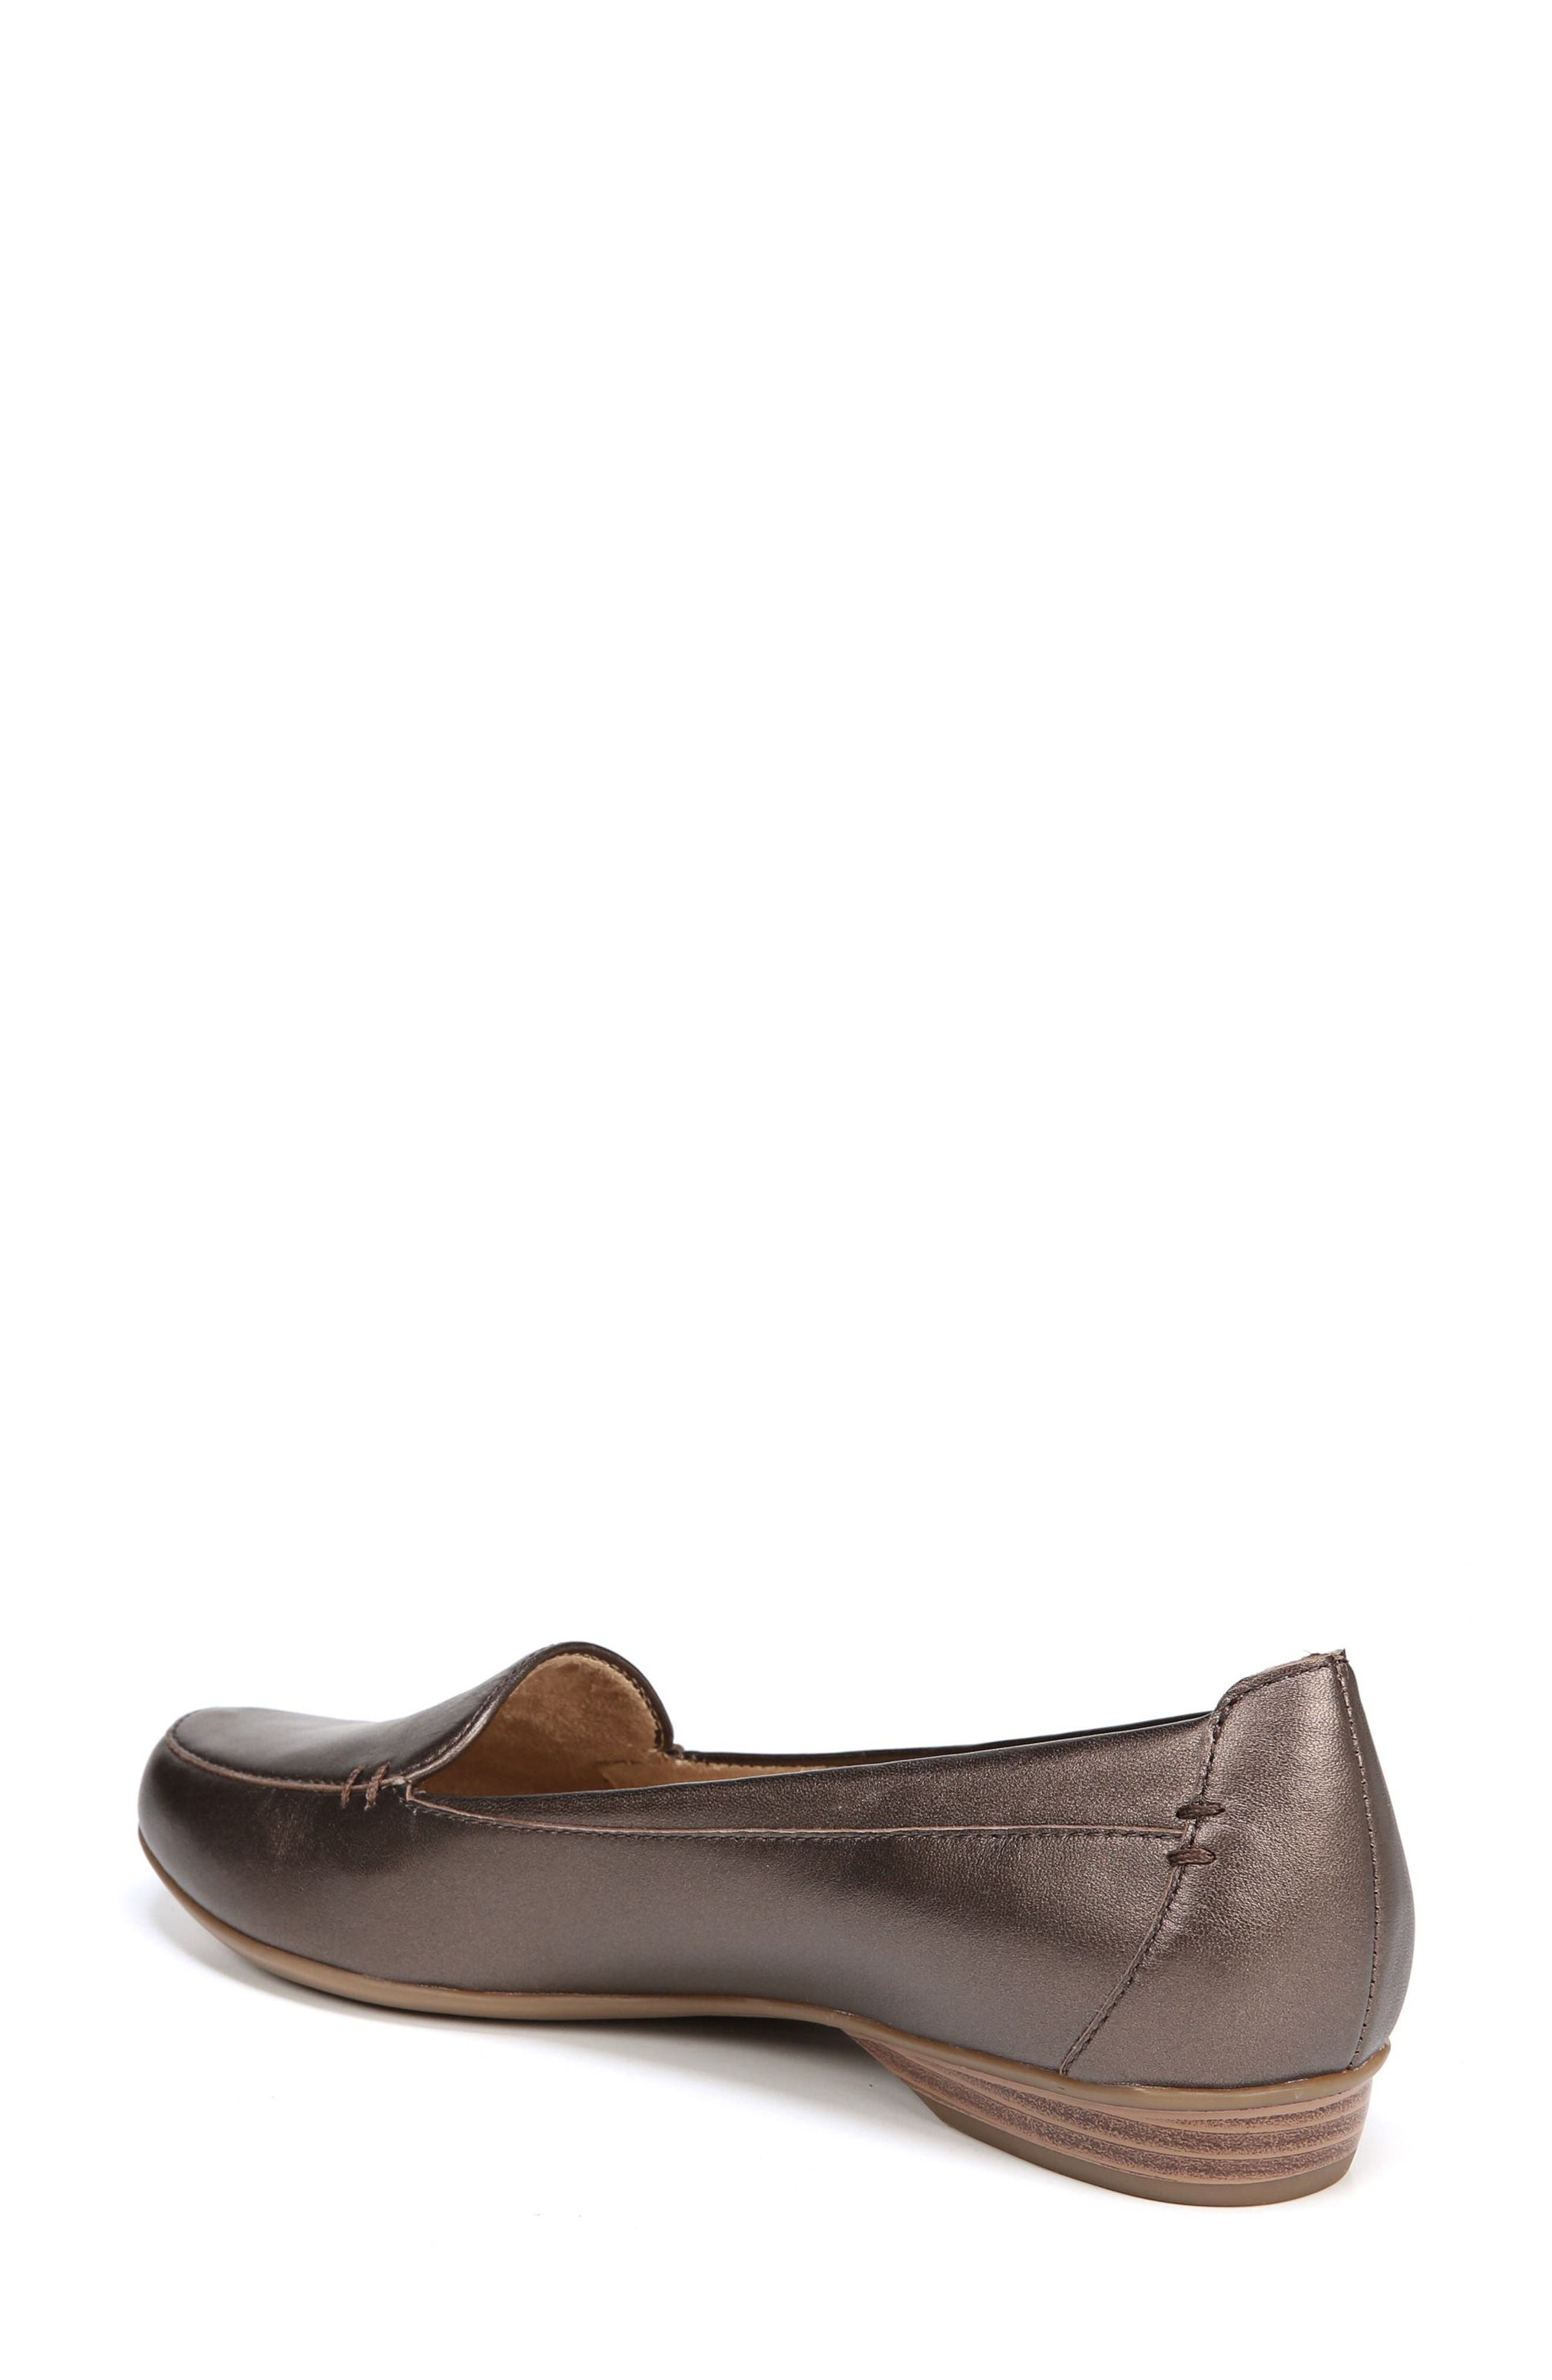 'Saban' Leather Loafer,                             Alternate thumbnail 2, color,                             BROWN BRONZE LEATHER